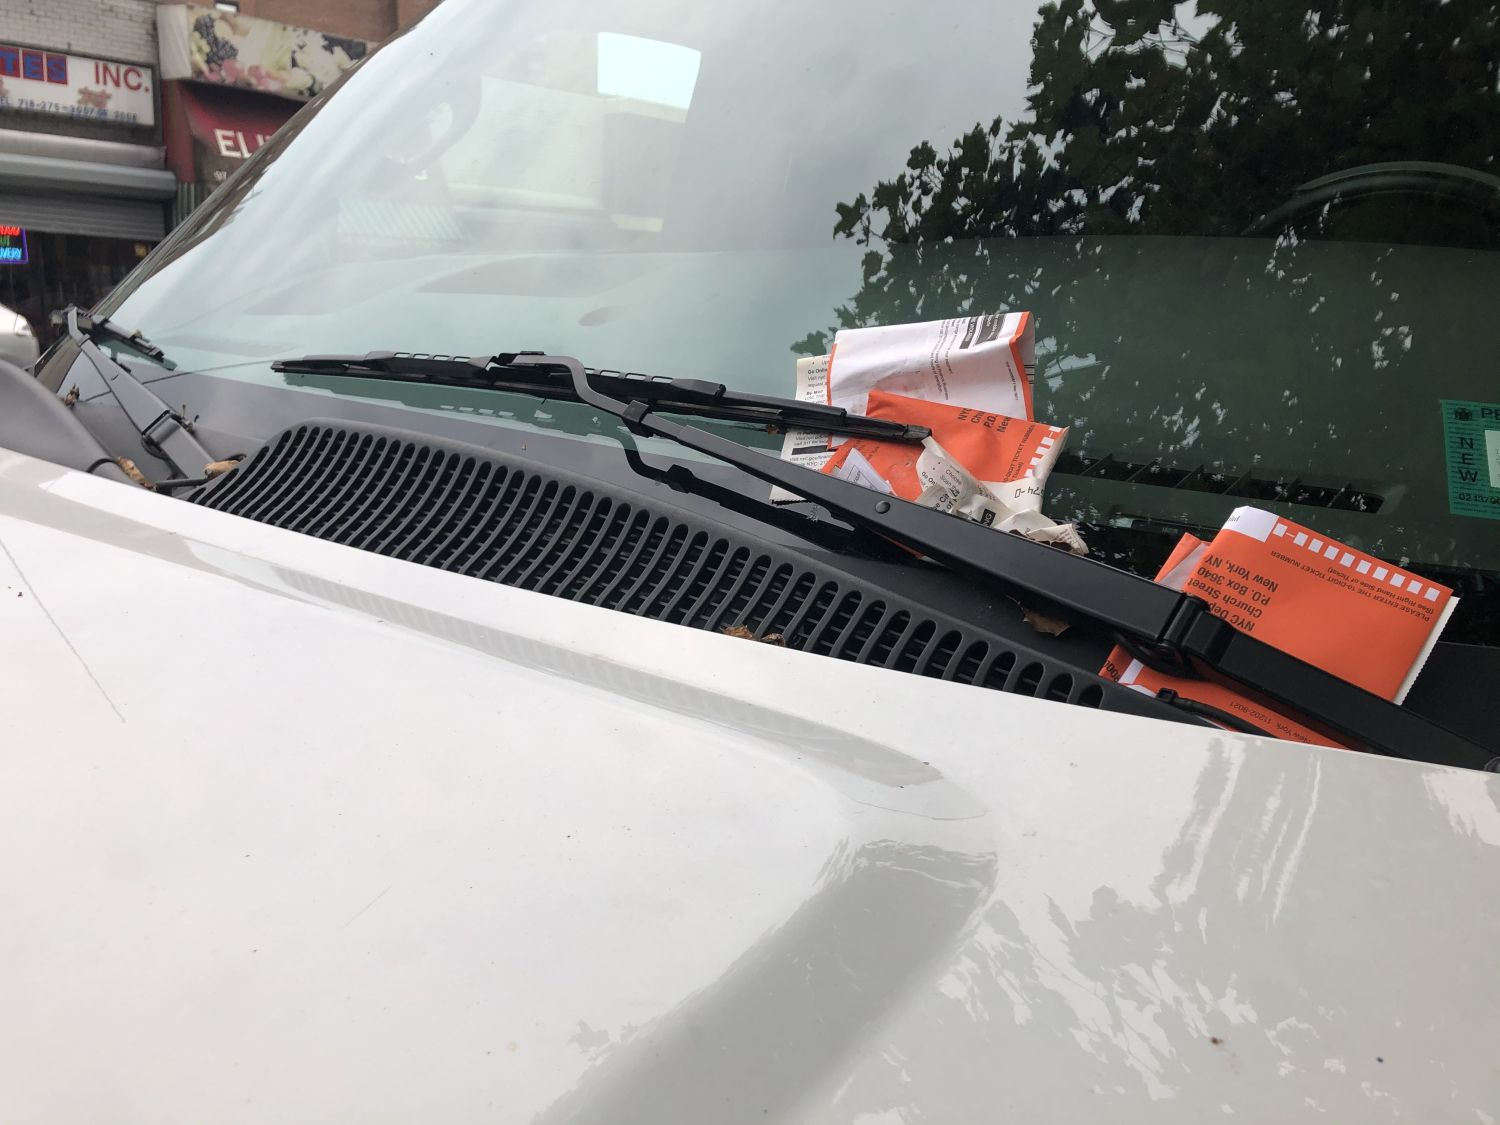 suv with several parking tickets in windshield wipers